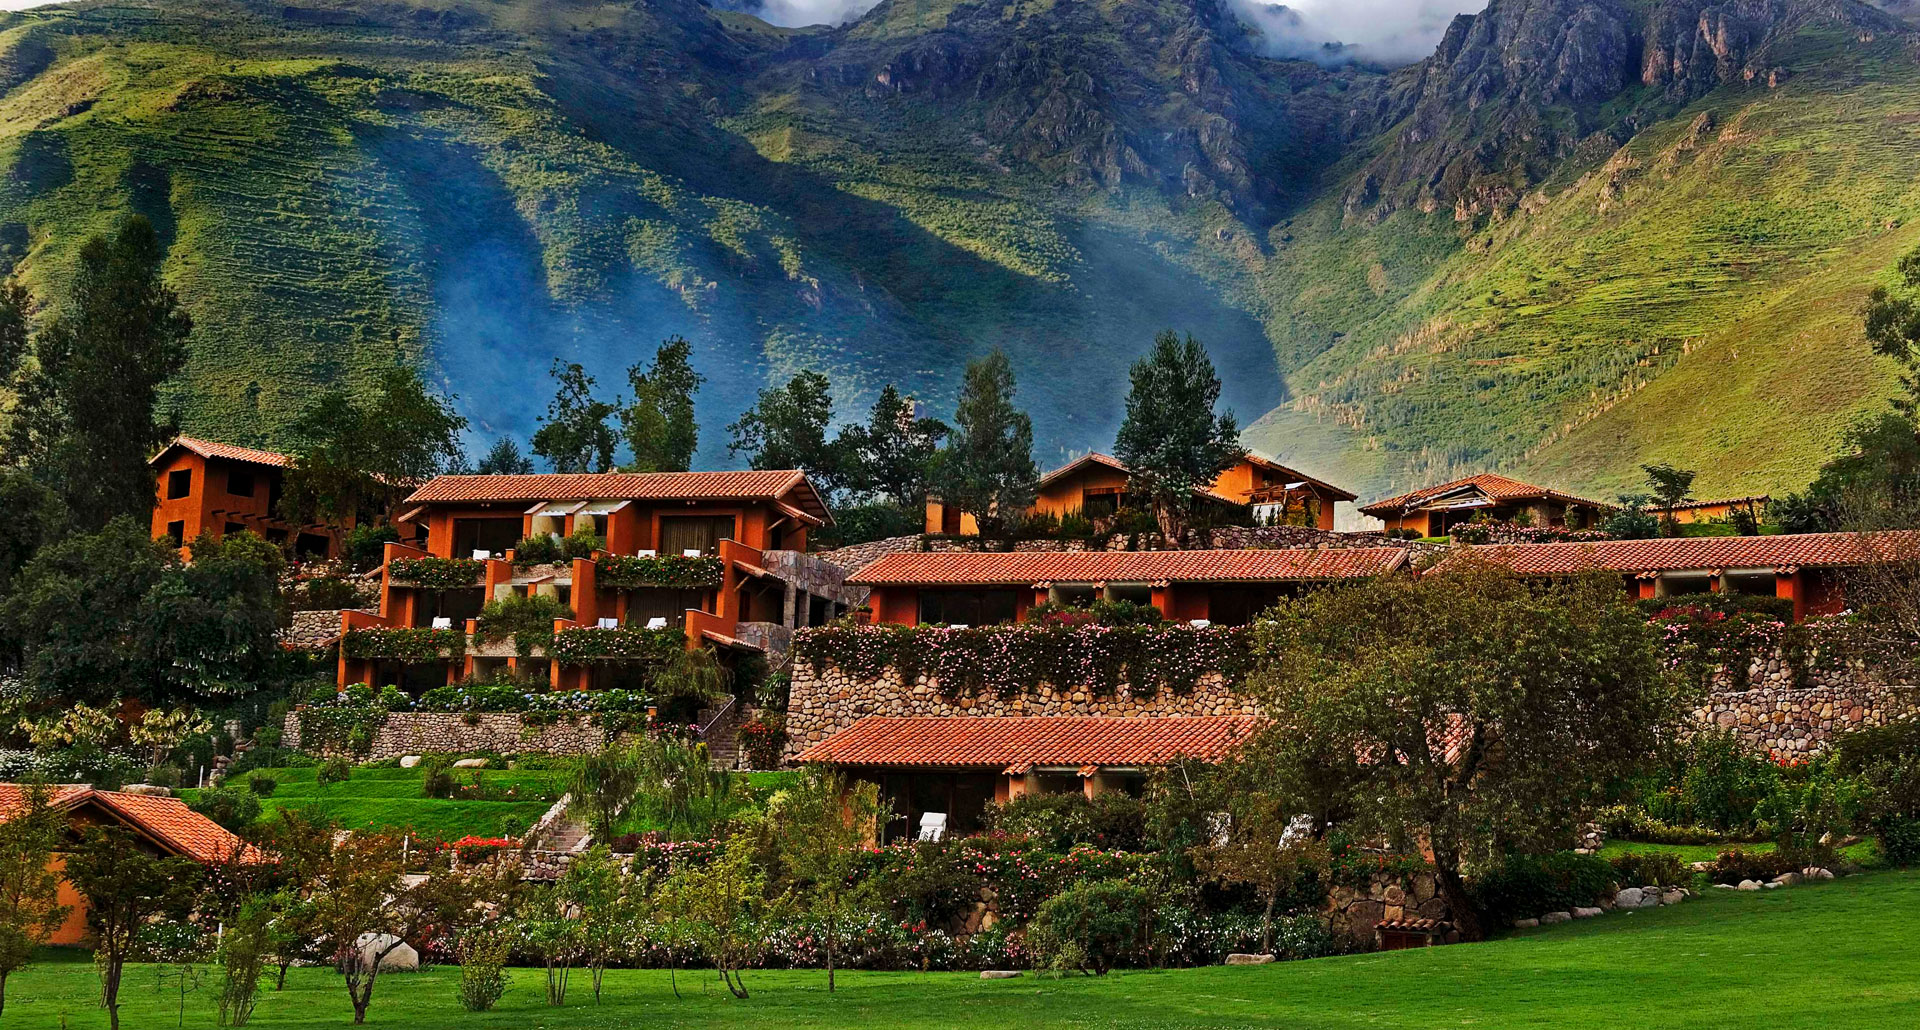 Belmond Hotel Rio Sagrado - boutique hotel in Cusco